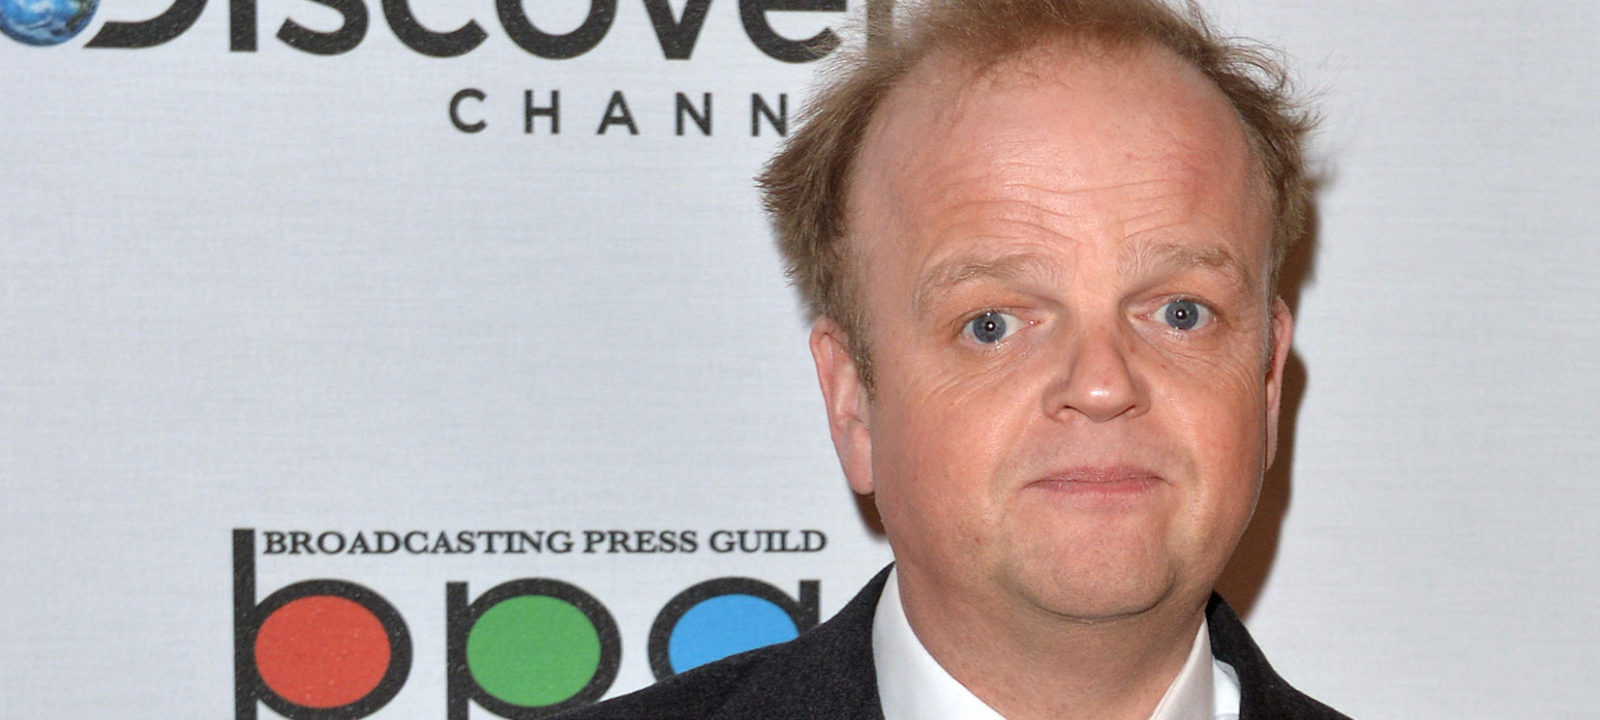 Toby Jones attends the Broadcasting Press Guild awards at Theatre Royal on March 13, 2015 in London, England.